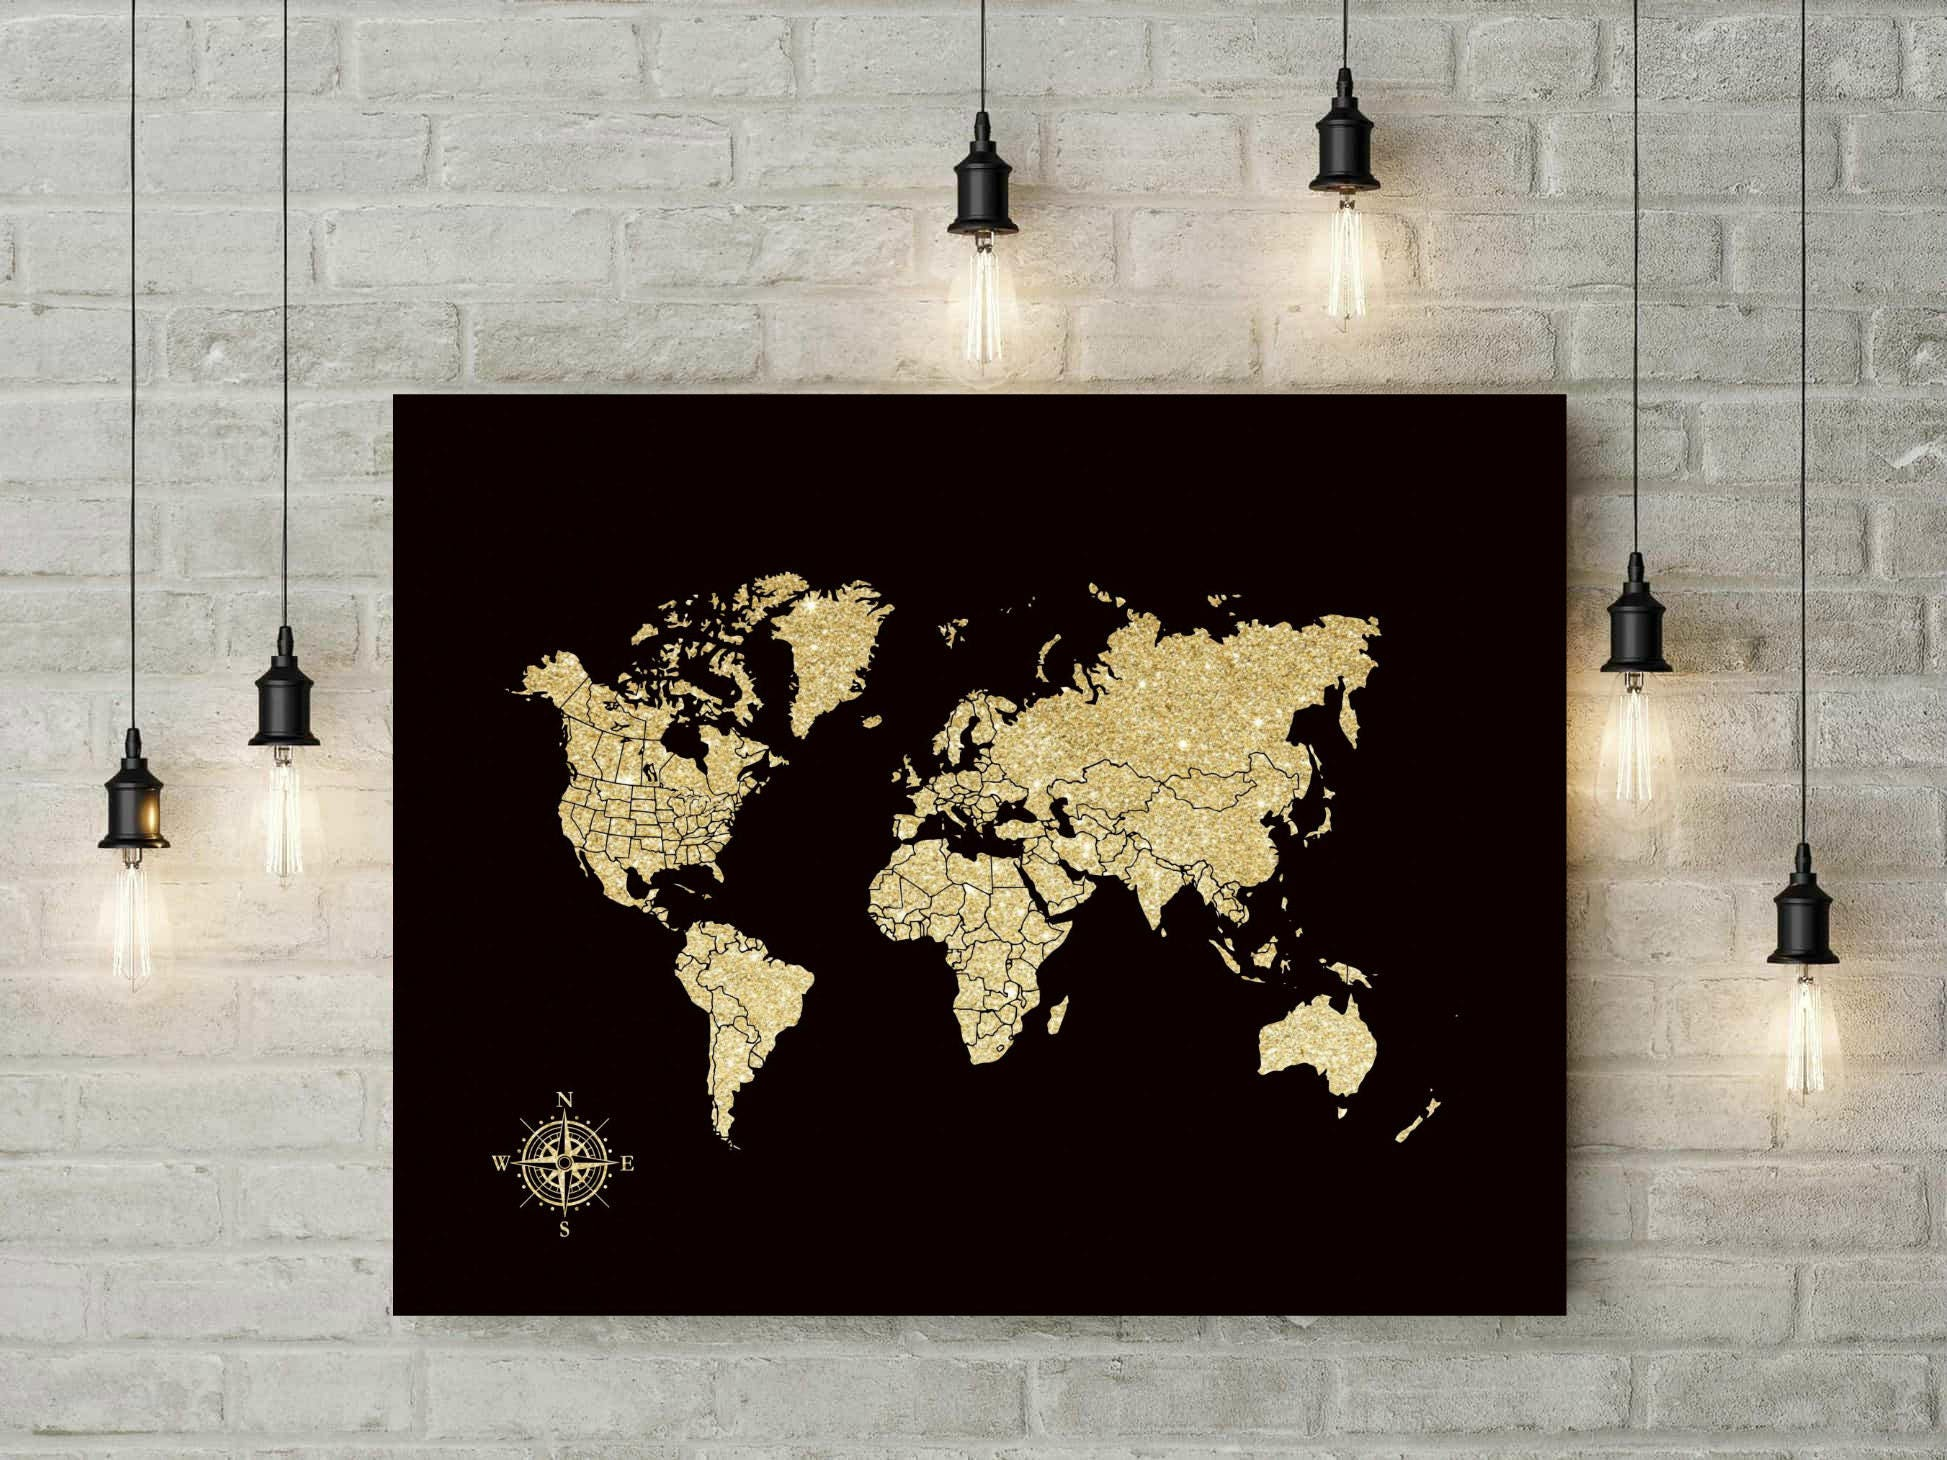 canvas push pin map foam board world map travel world map golden anniversary gift for parents christmas gift wedding gift 37477